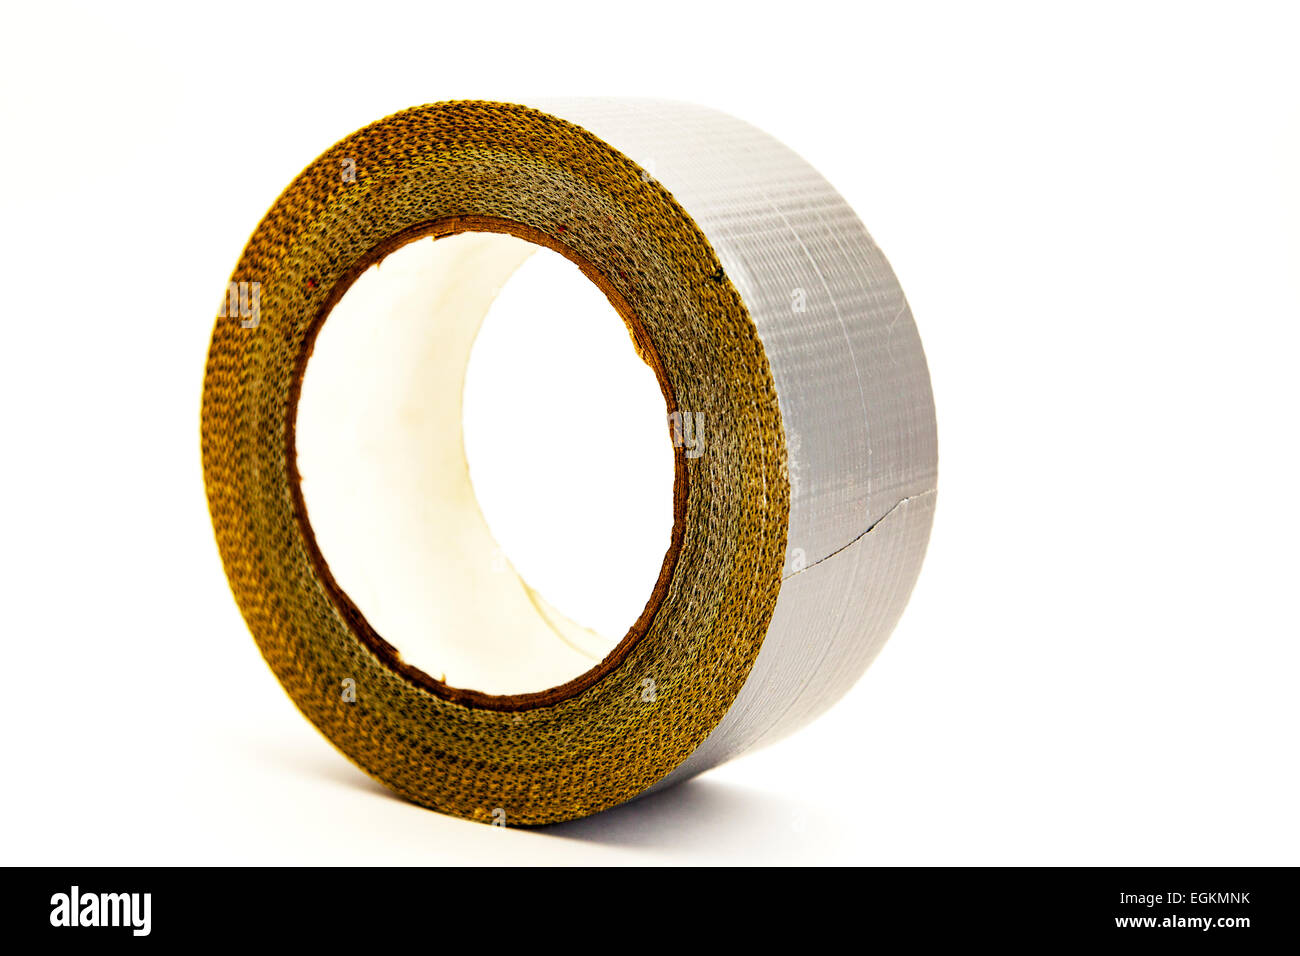 Duct tape gaffer roll reel silver adhesive sticky wrapping cutout cut out white background copy space isolated - Stock Image